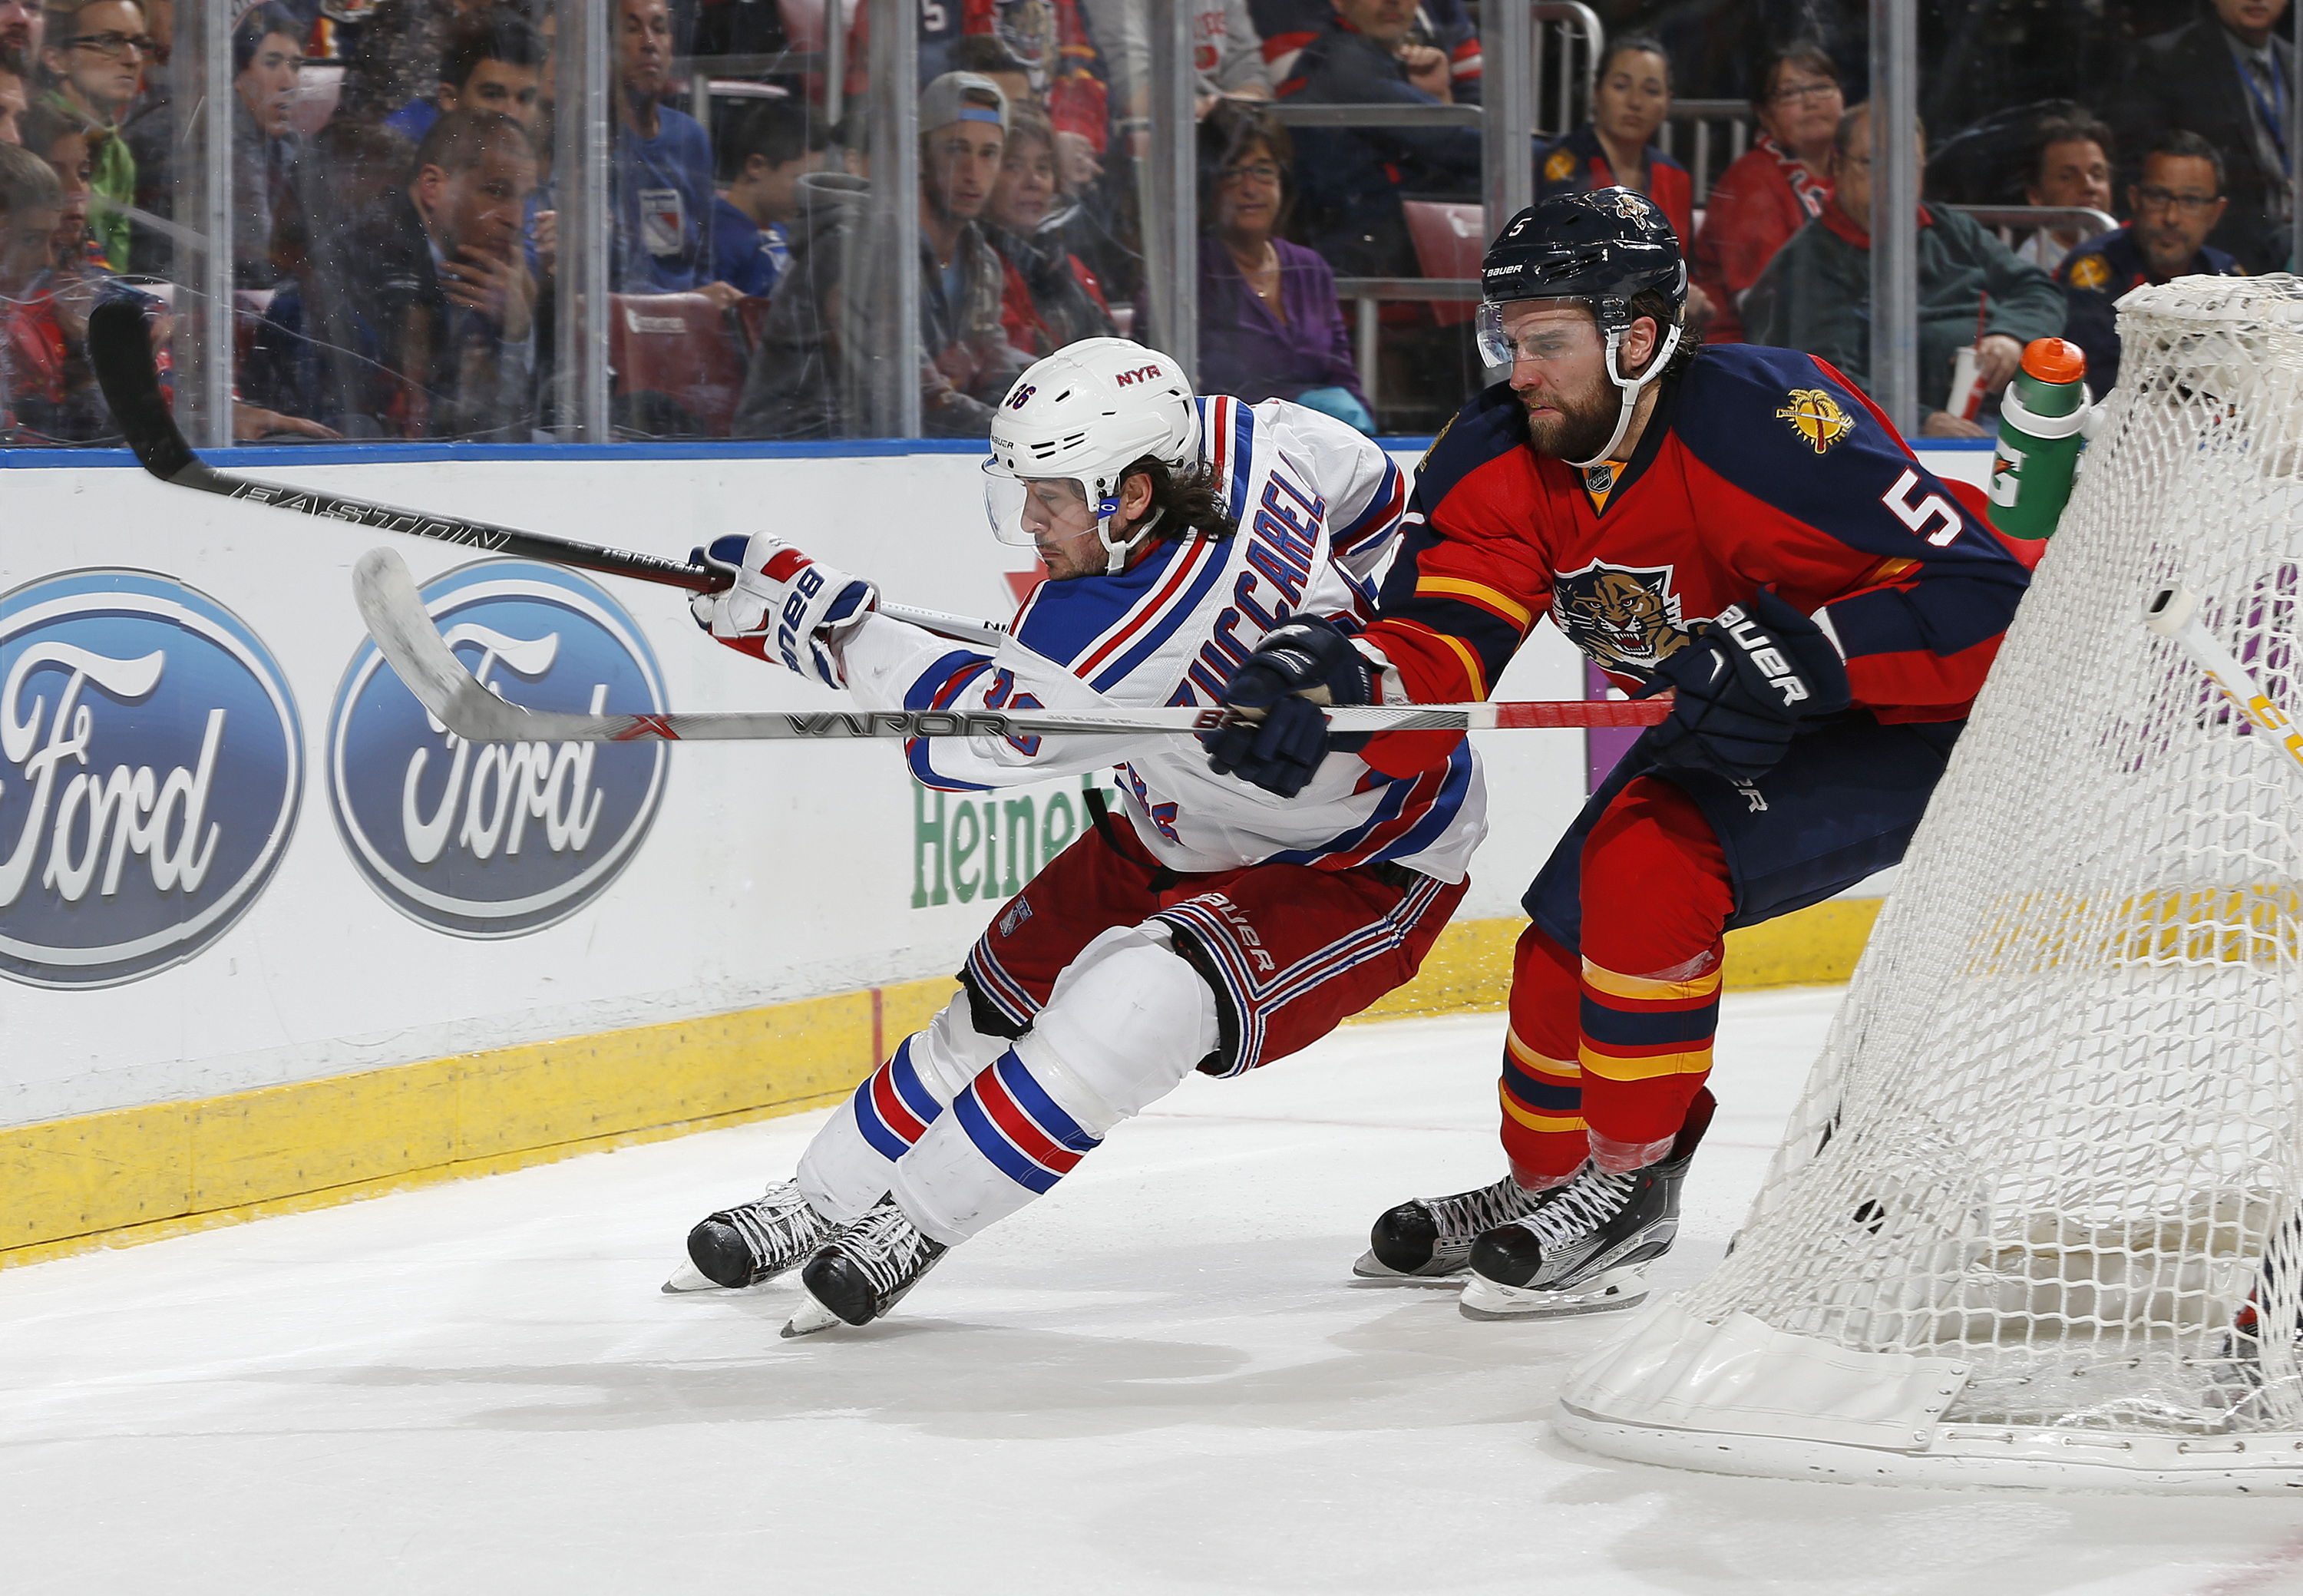 New York Rangers forward Mats Zuccarello (36) and Florida Panthers defenseman Aaron Ekblad (5) chase a loose puck as they skate behind the net during the second period of an NHL hockey game, Saturday, Jan. 2, 2016, in Sunrise, Fla. (AP Photo/Joel Auerbach